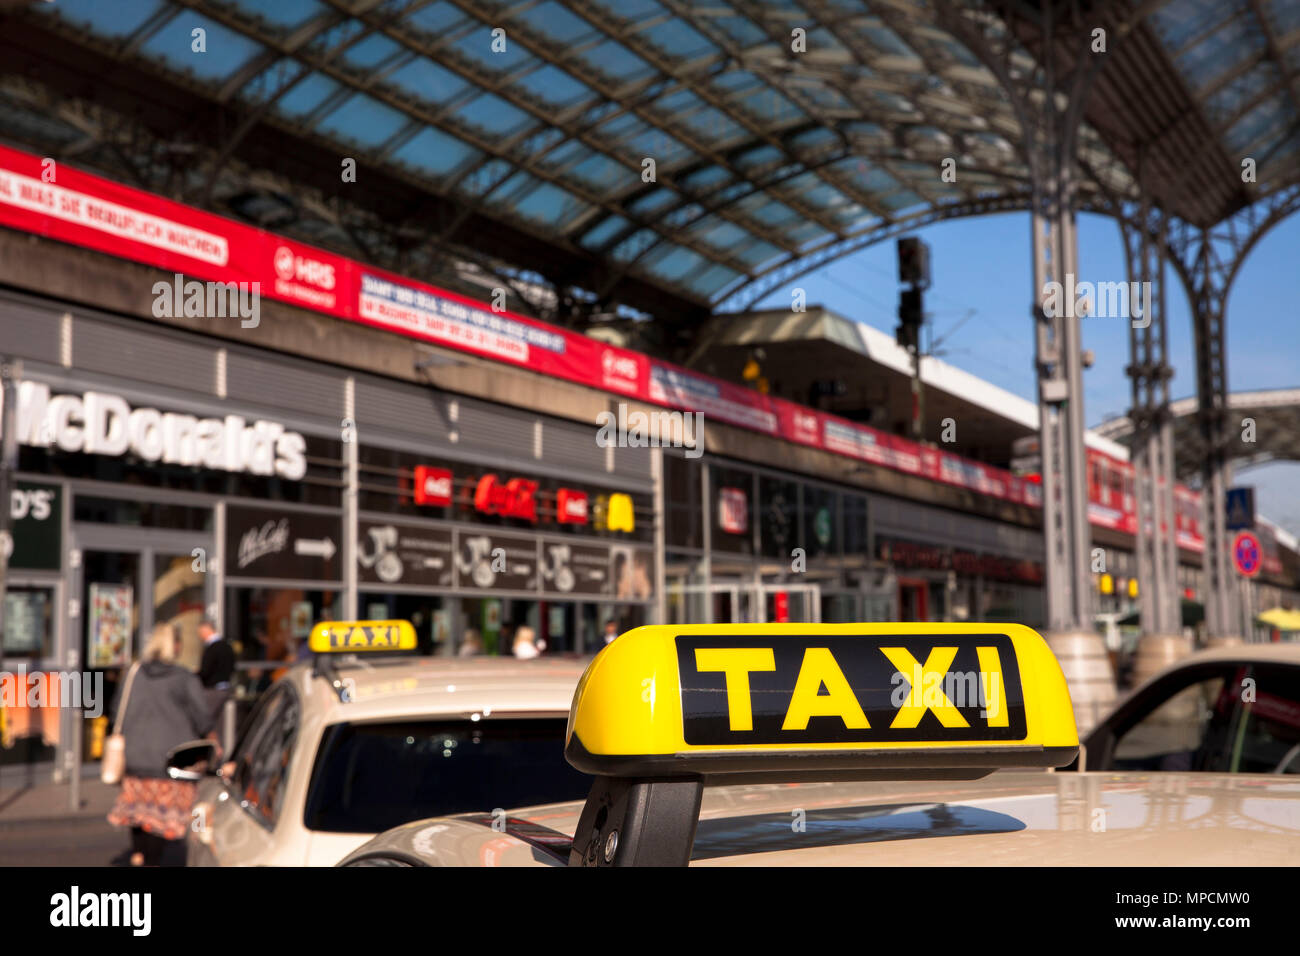 Germany, Cologne, taxis infront of the entrance of the main station at the Breslauer square.  Deutschland, Koeln, Taxis vor dem Eingang zum Hauptbahnh - Stock Image